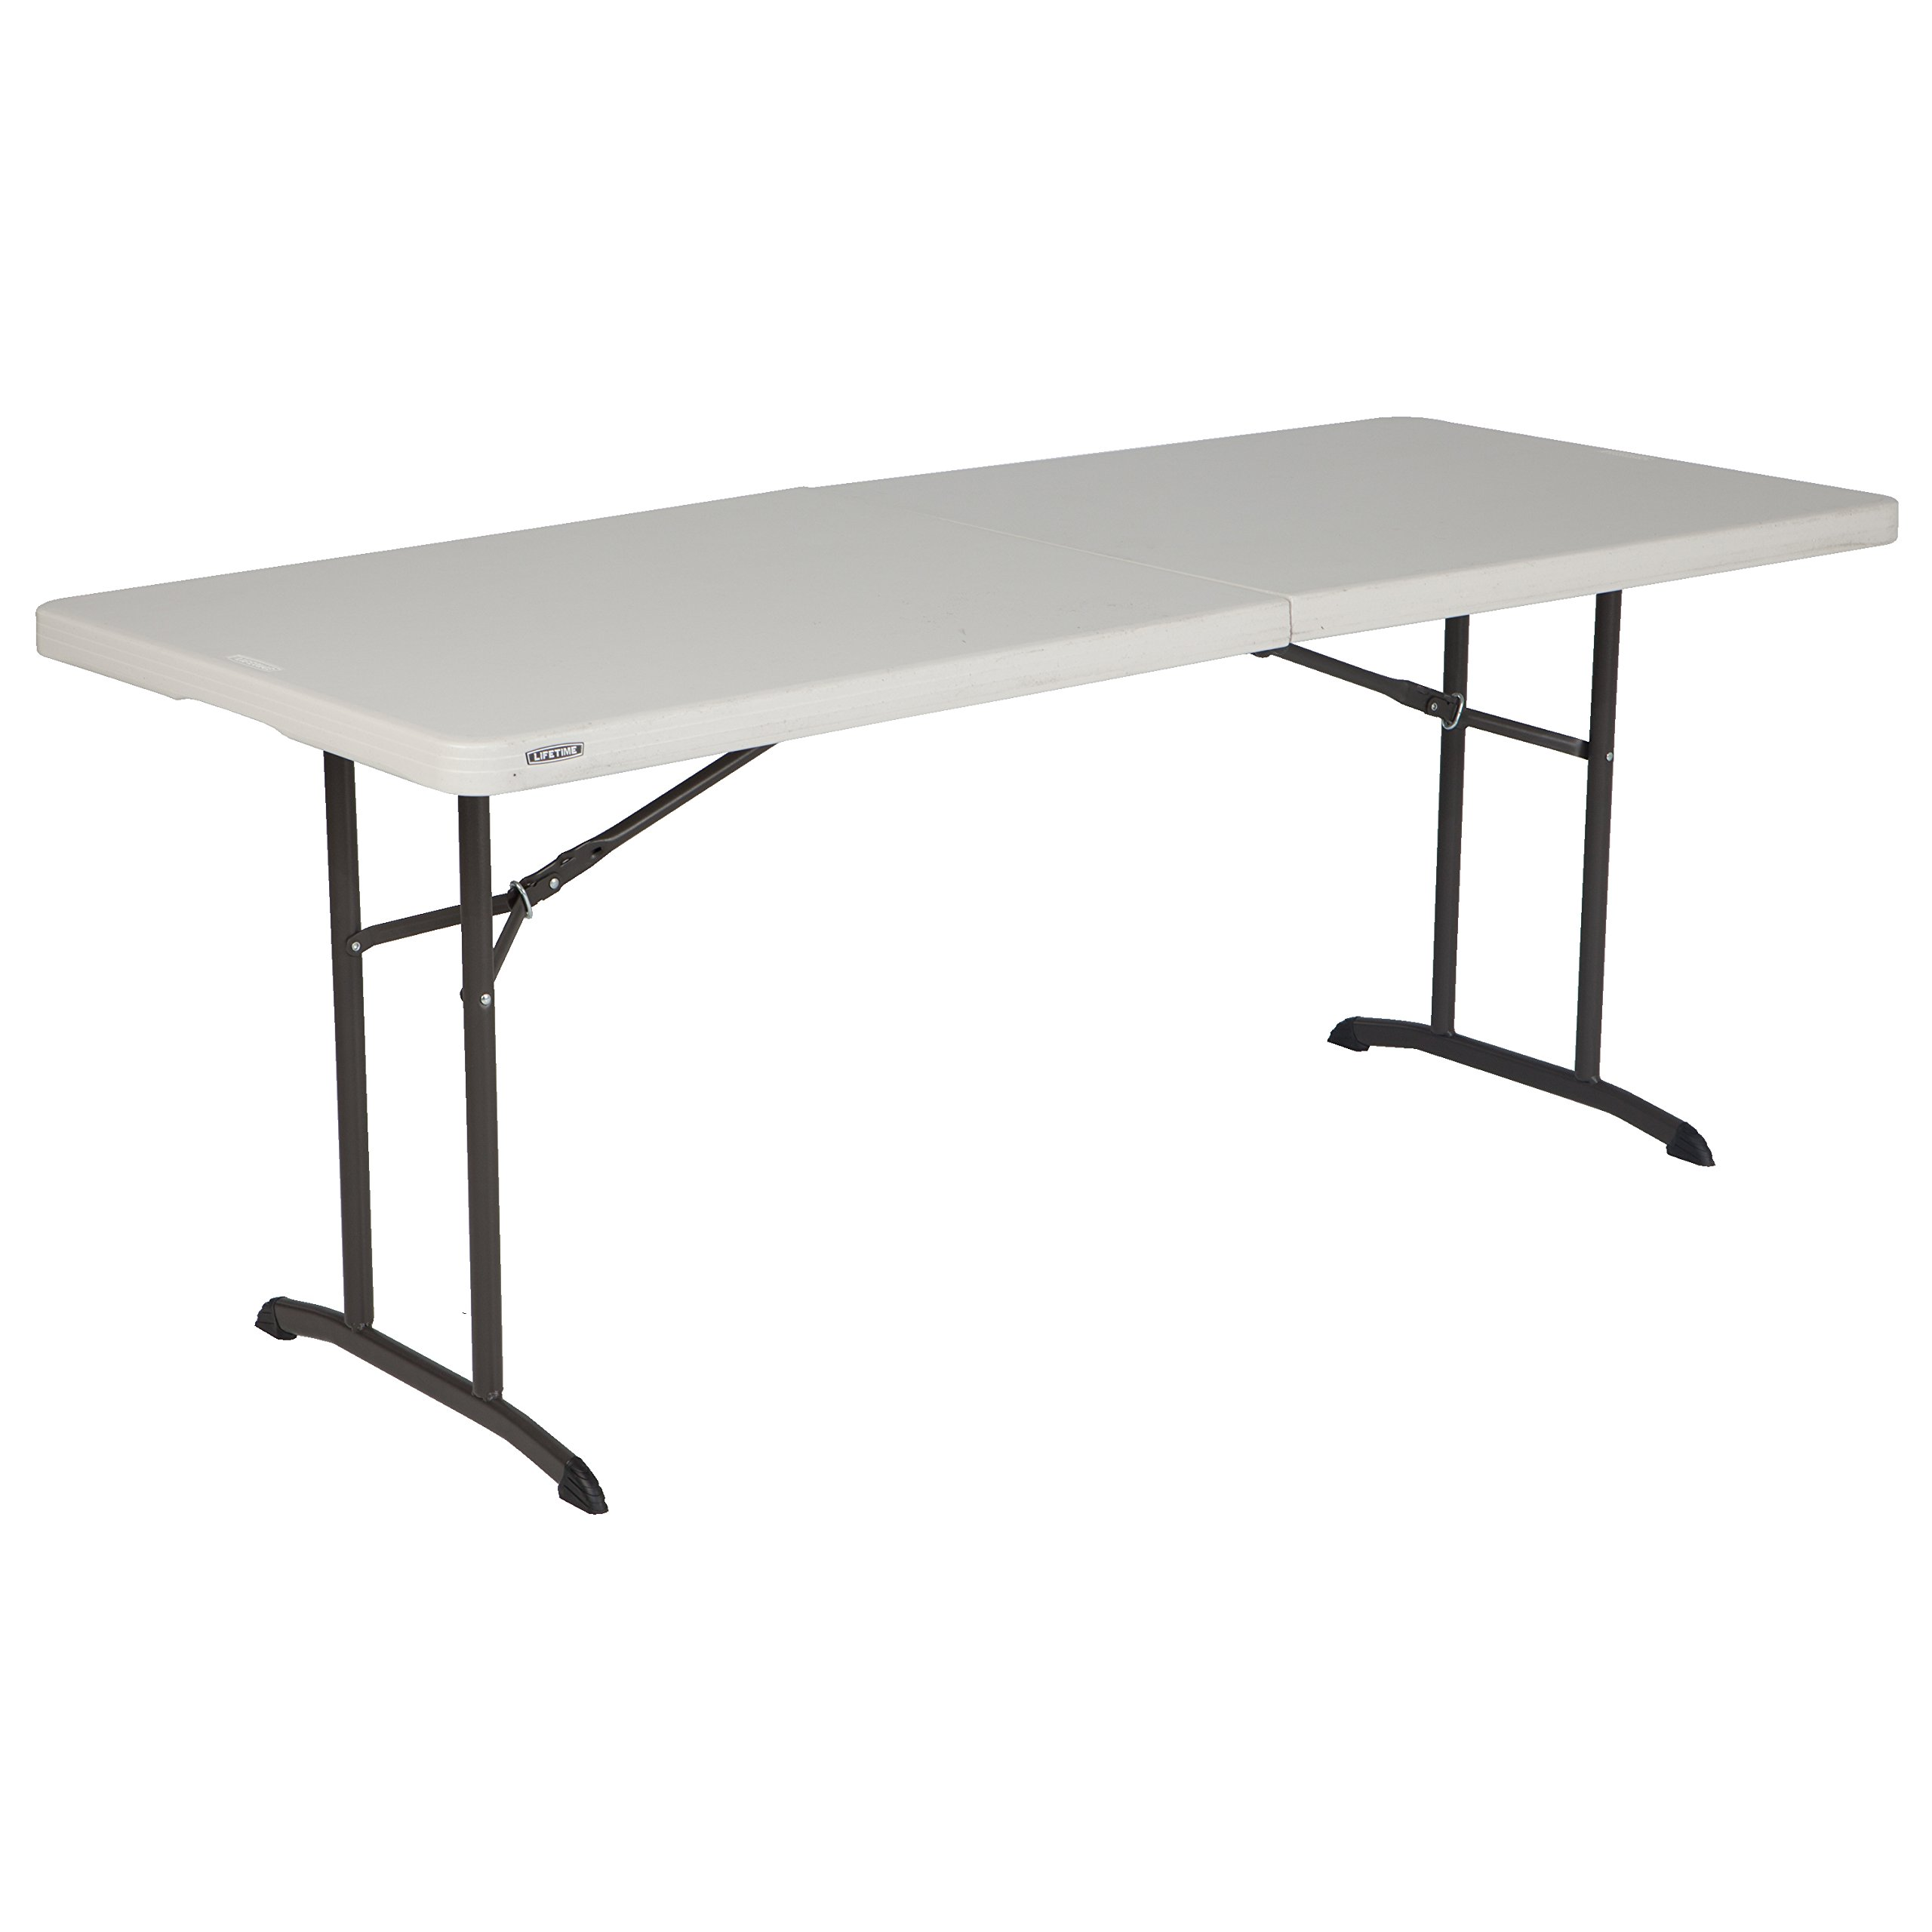 Lifetime 80382 Commercial Fold-In-Half Table, 6-foot, Almond by Lifetime